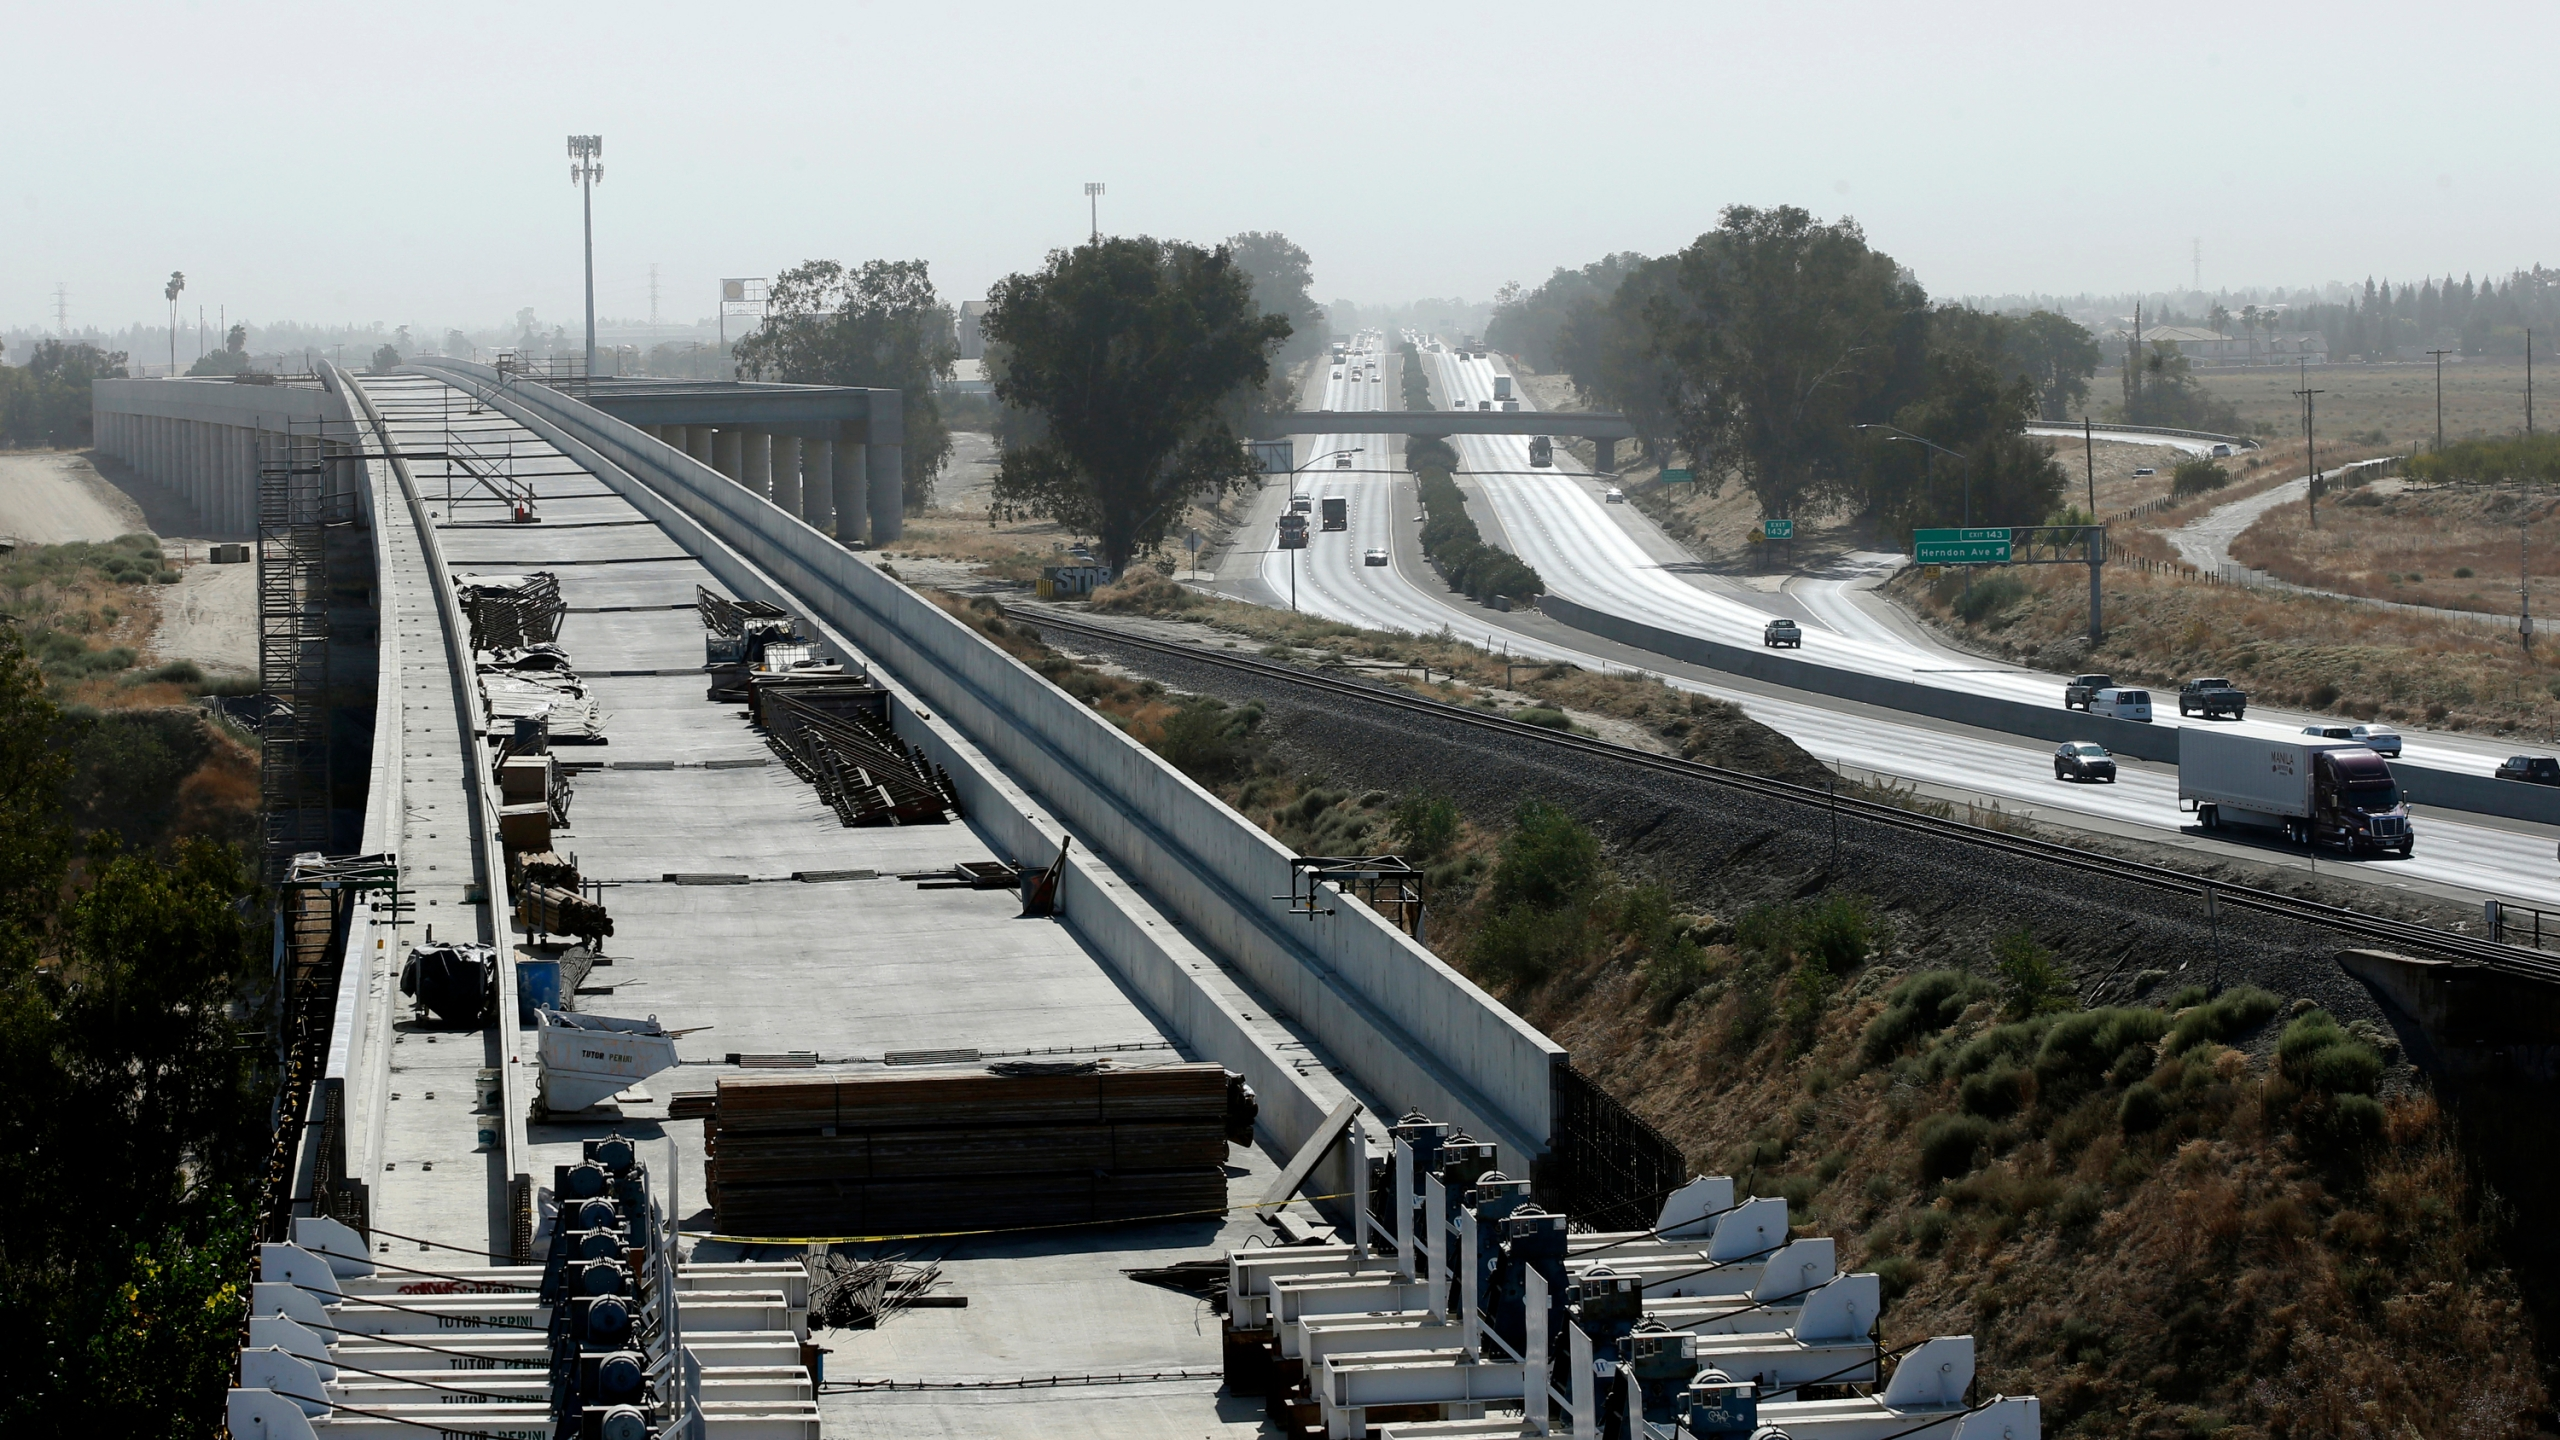 The high-speed rail viaduct paralleling Highway 99 near Fresno, Calif., is seen on Oct. 9, 2019. (Rich Pedroncelli / Associated Press)